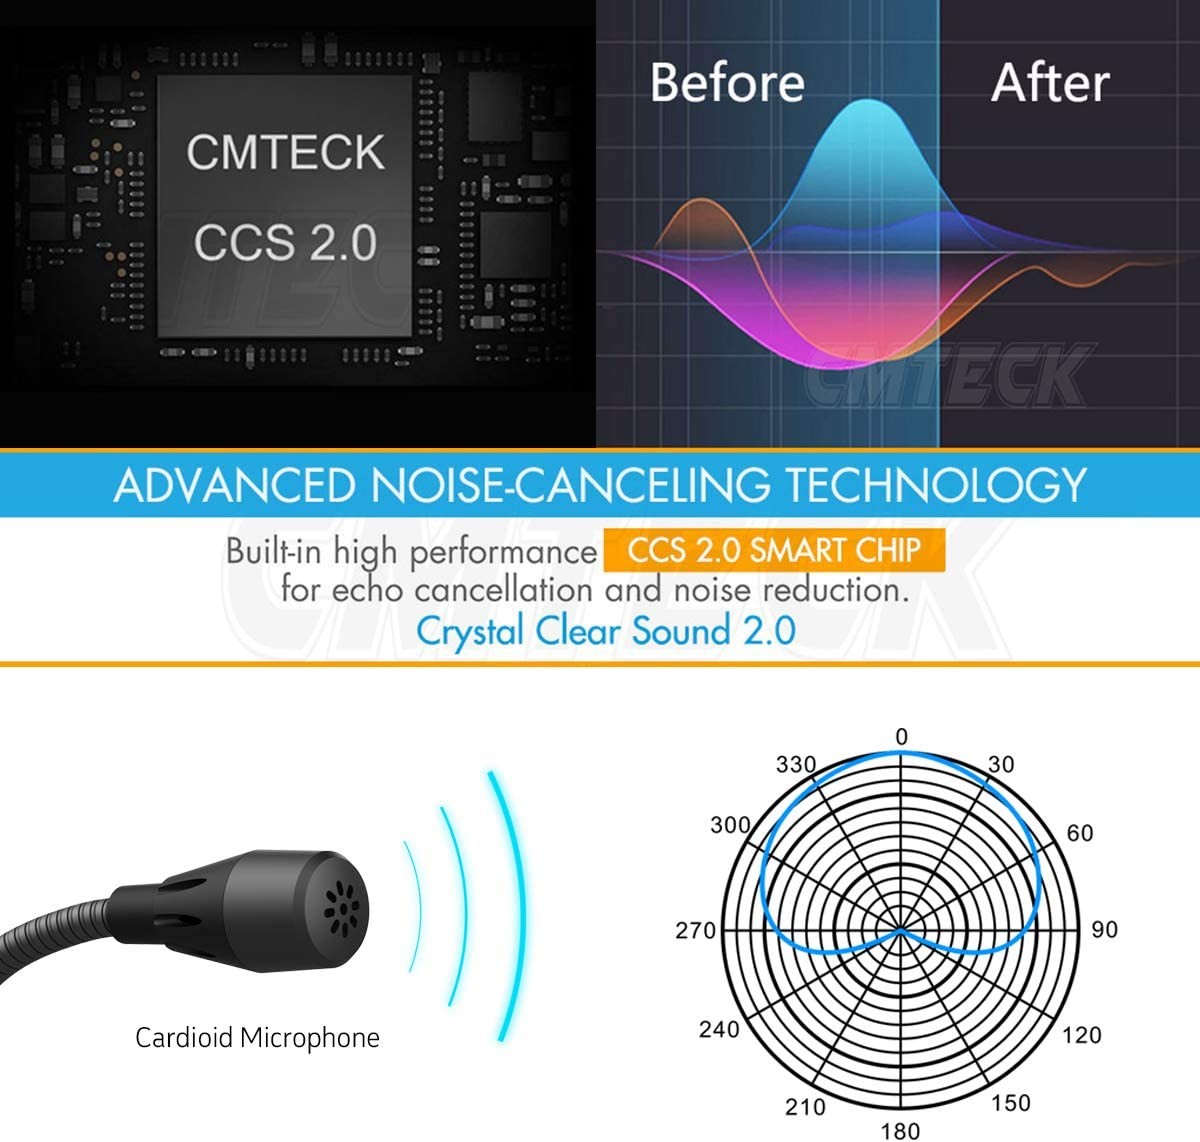 USB Cardioid Microphone,CMTECK G008 Plug &Play Desktop Condenser PC/Laptop Mic,Mute Button with LED Indicator, Compatible with Windows/Mac, Ideal for YouTube,Skype,Recording,Games: Home Audio & Theater